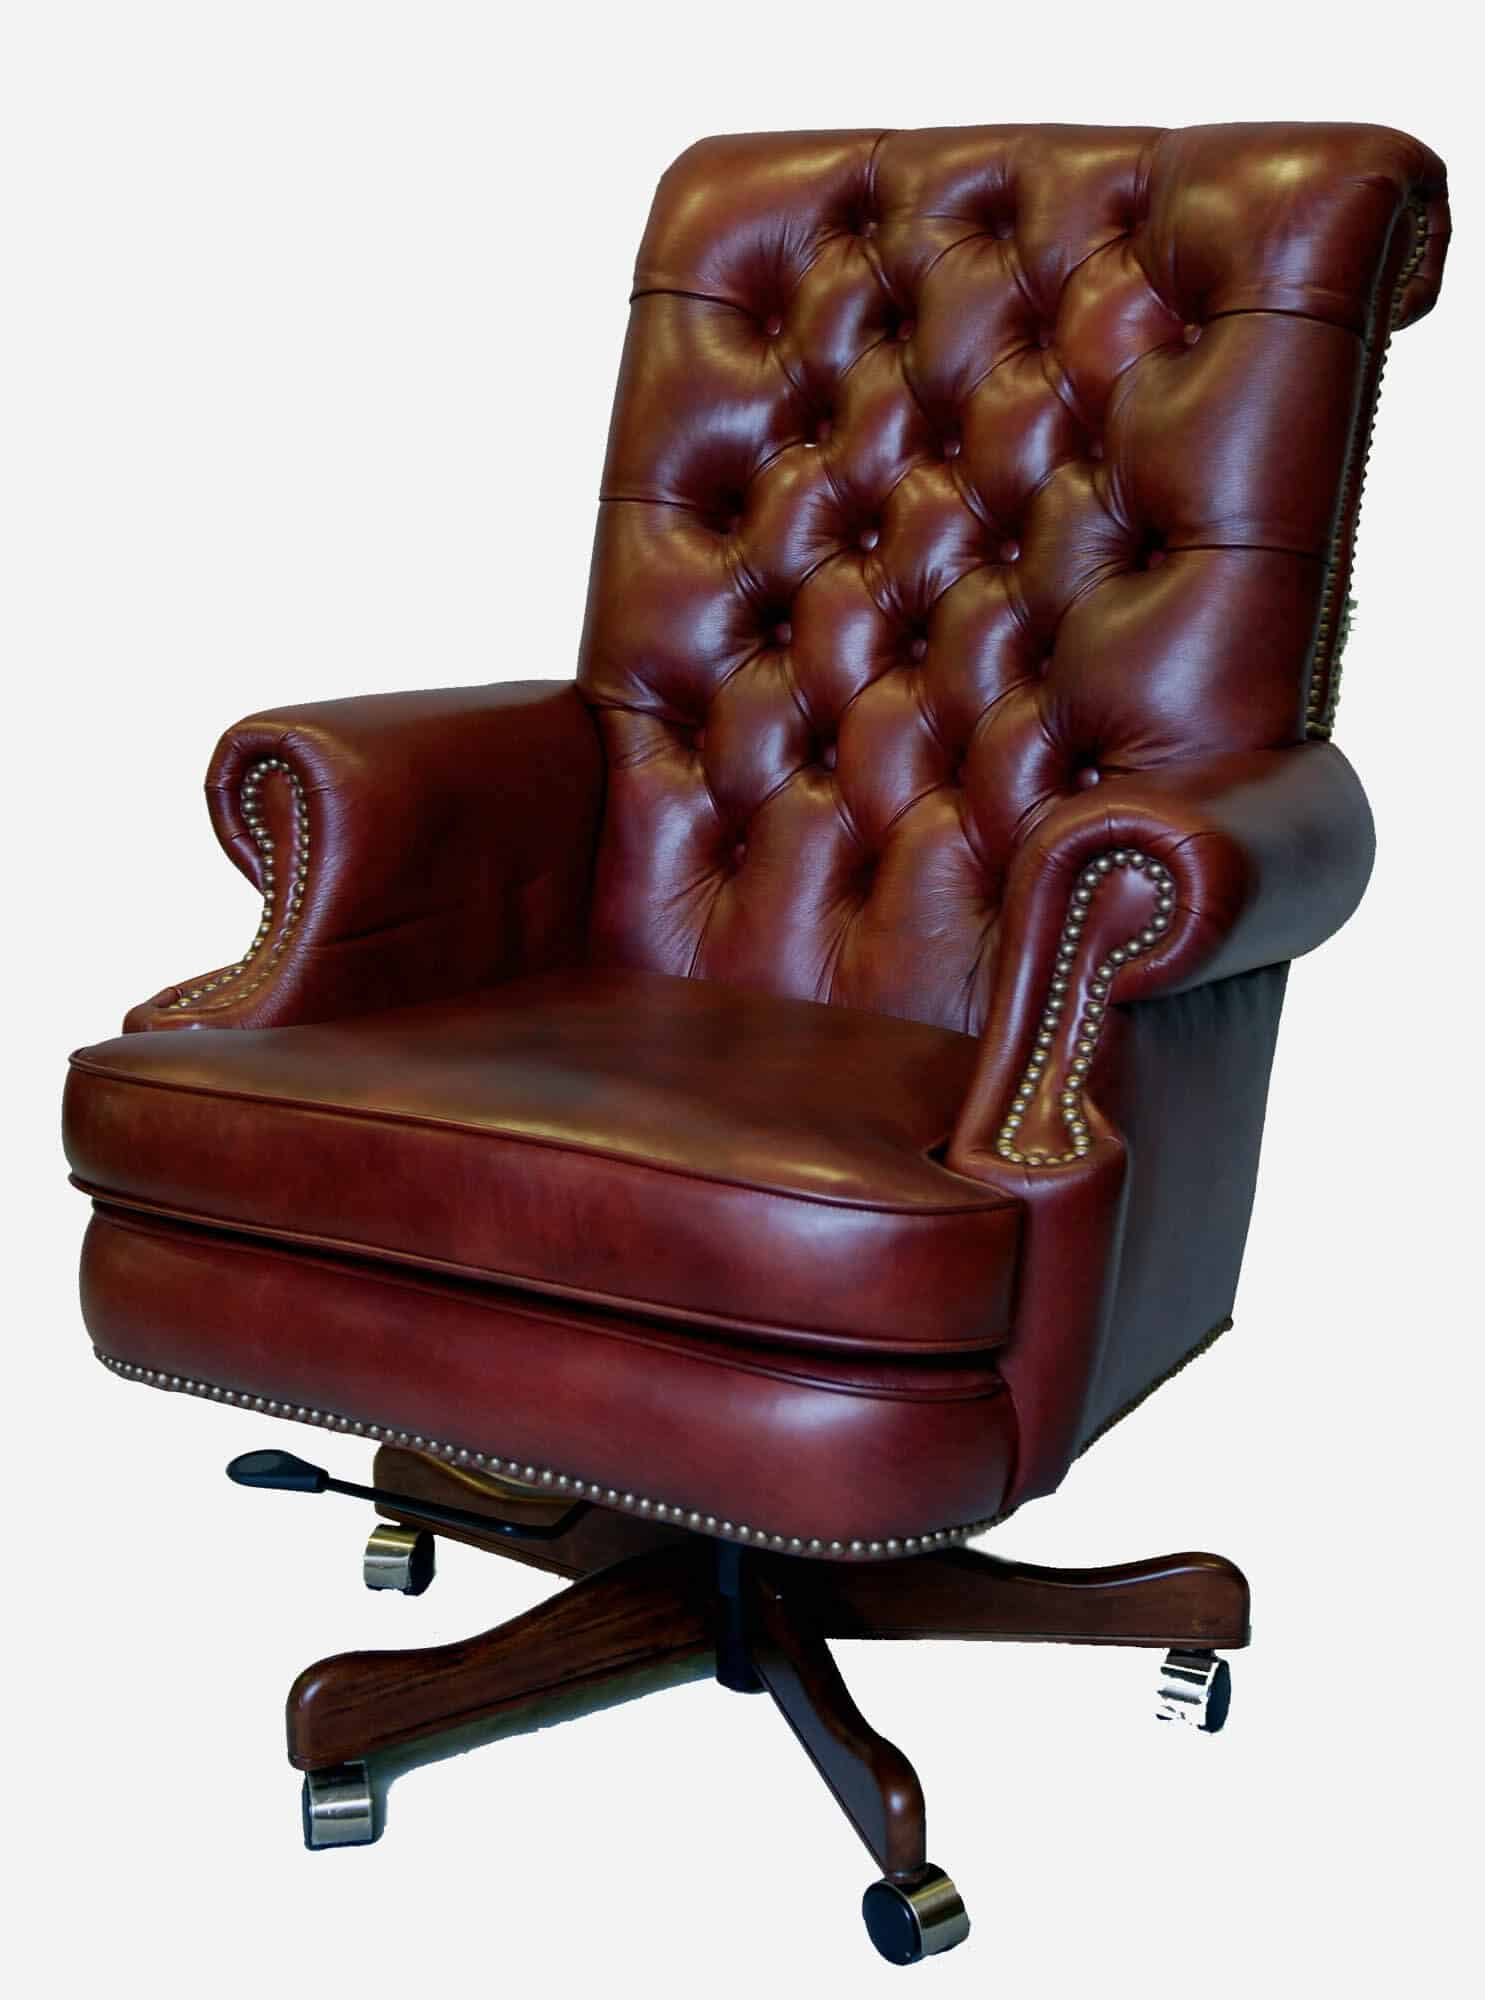 Office Chair Guide & How To Buy A Desk Chair + Top 10